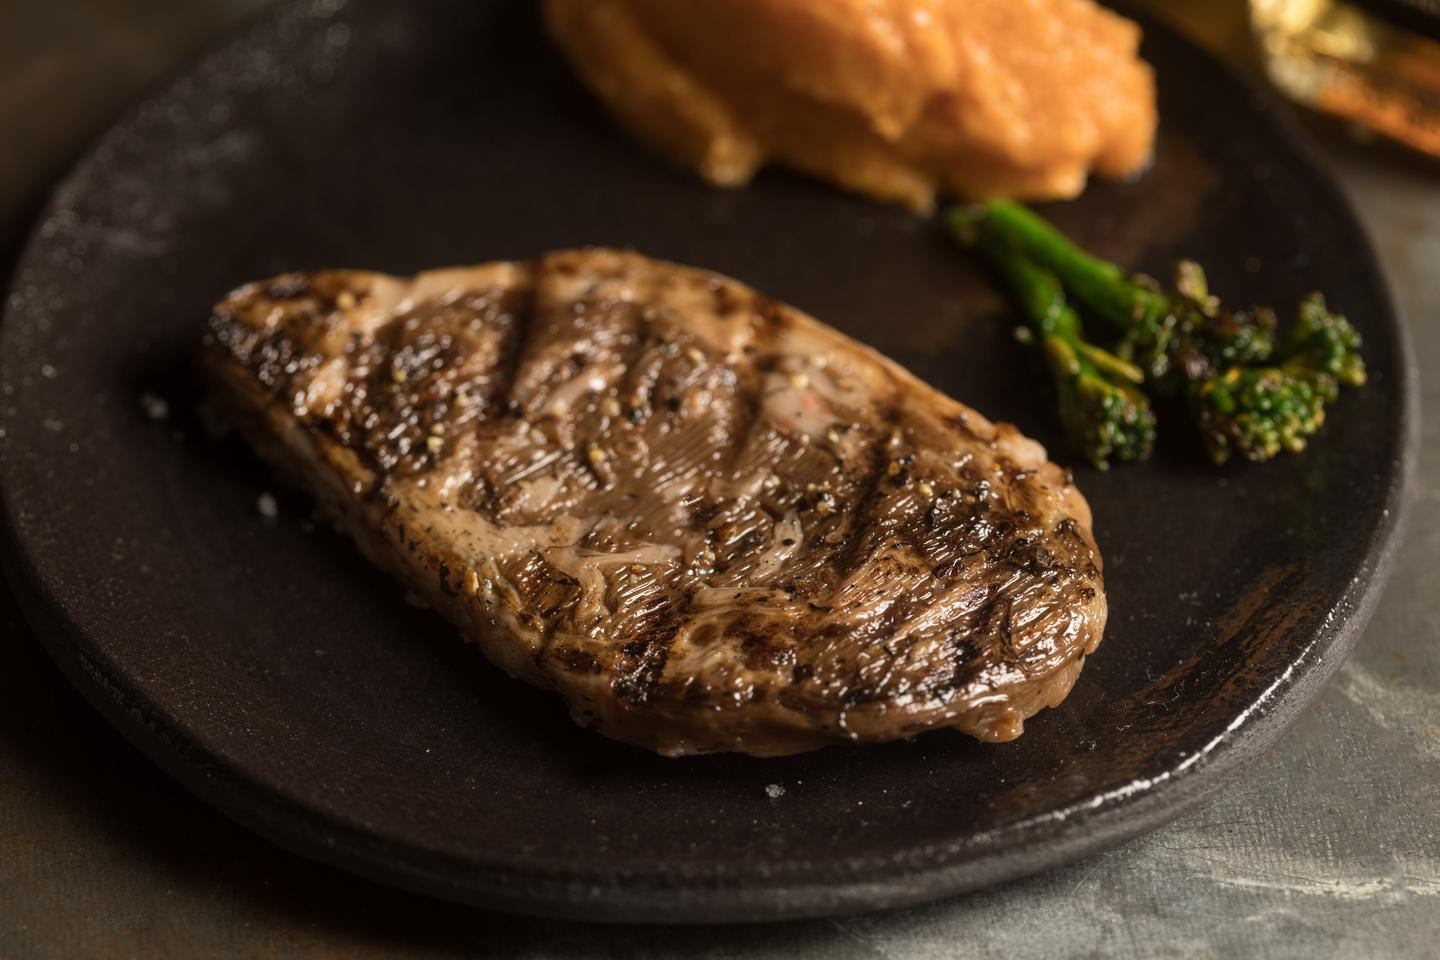 This rib-eye steak was produced using a new 3D bioprinting technology